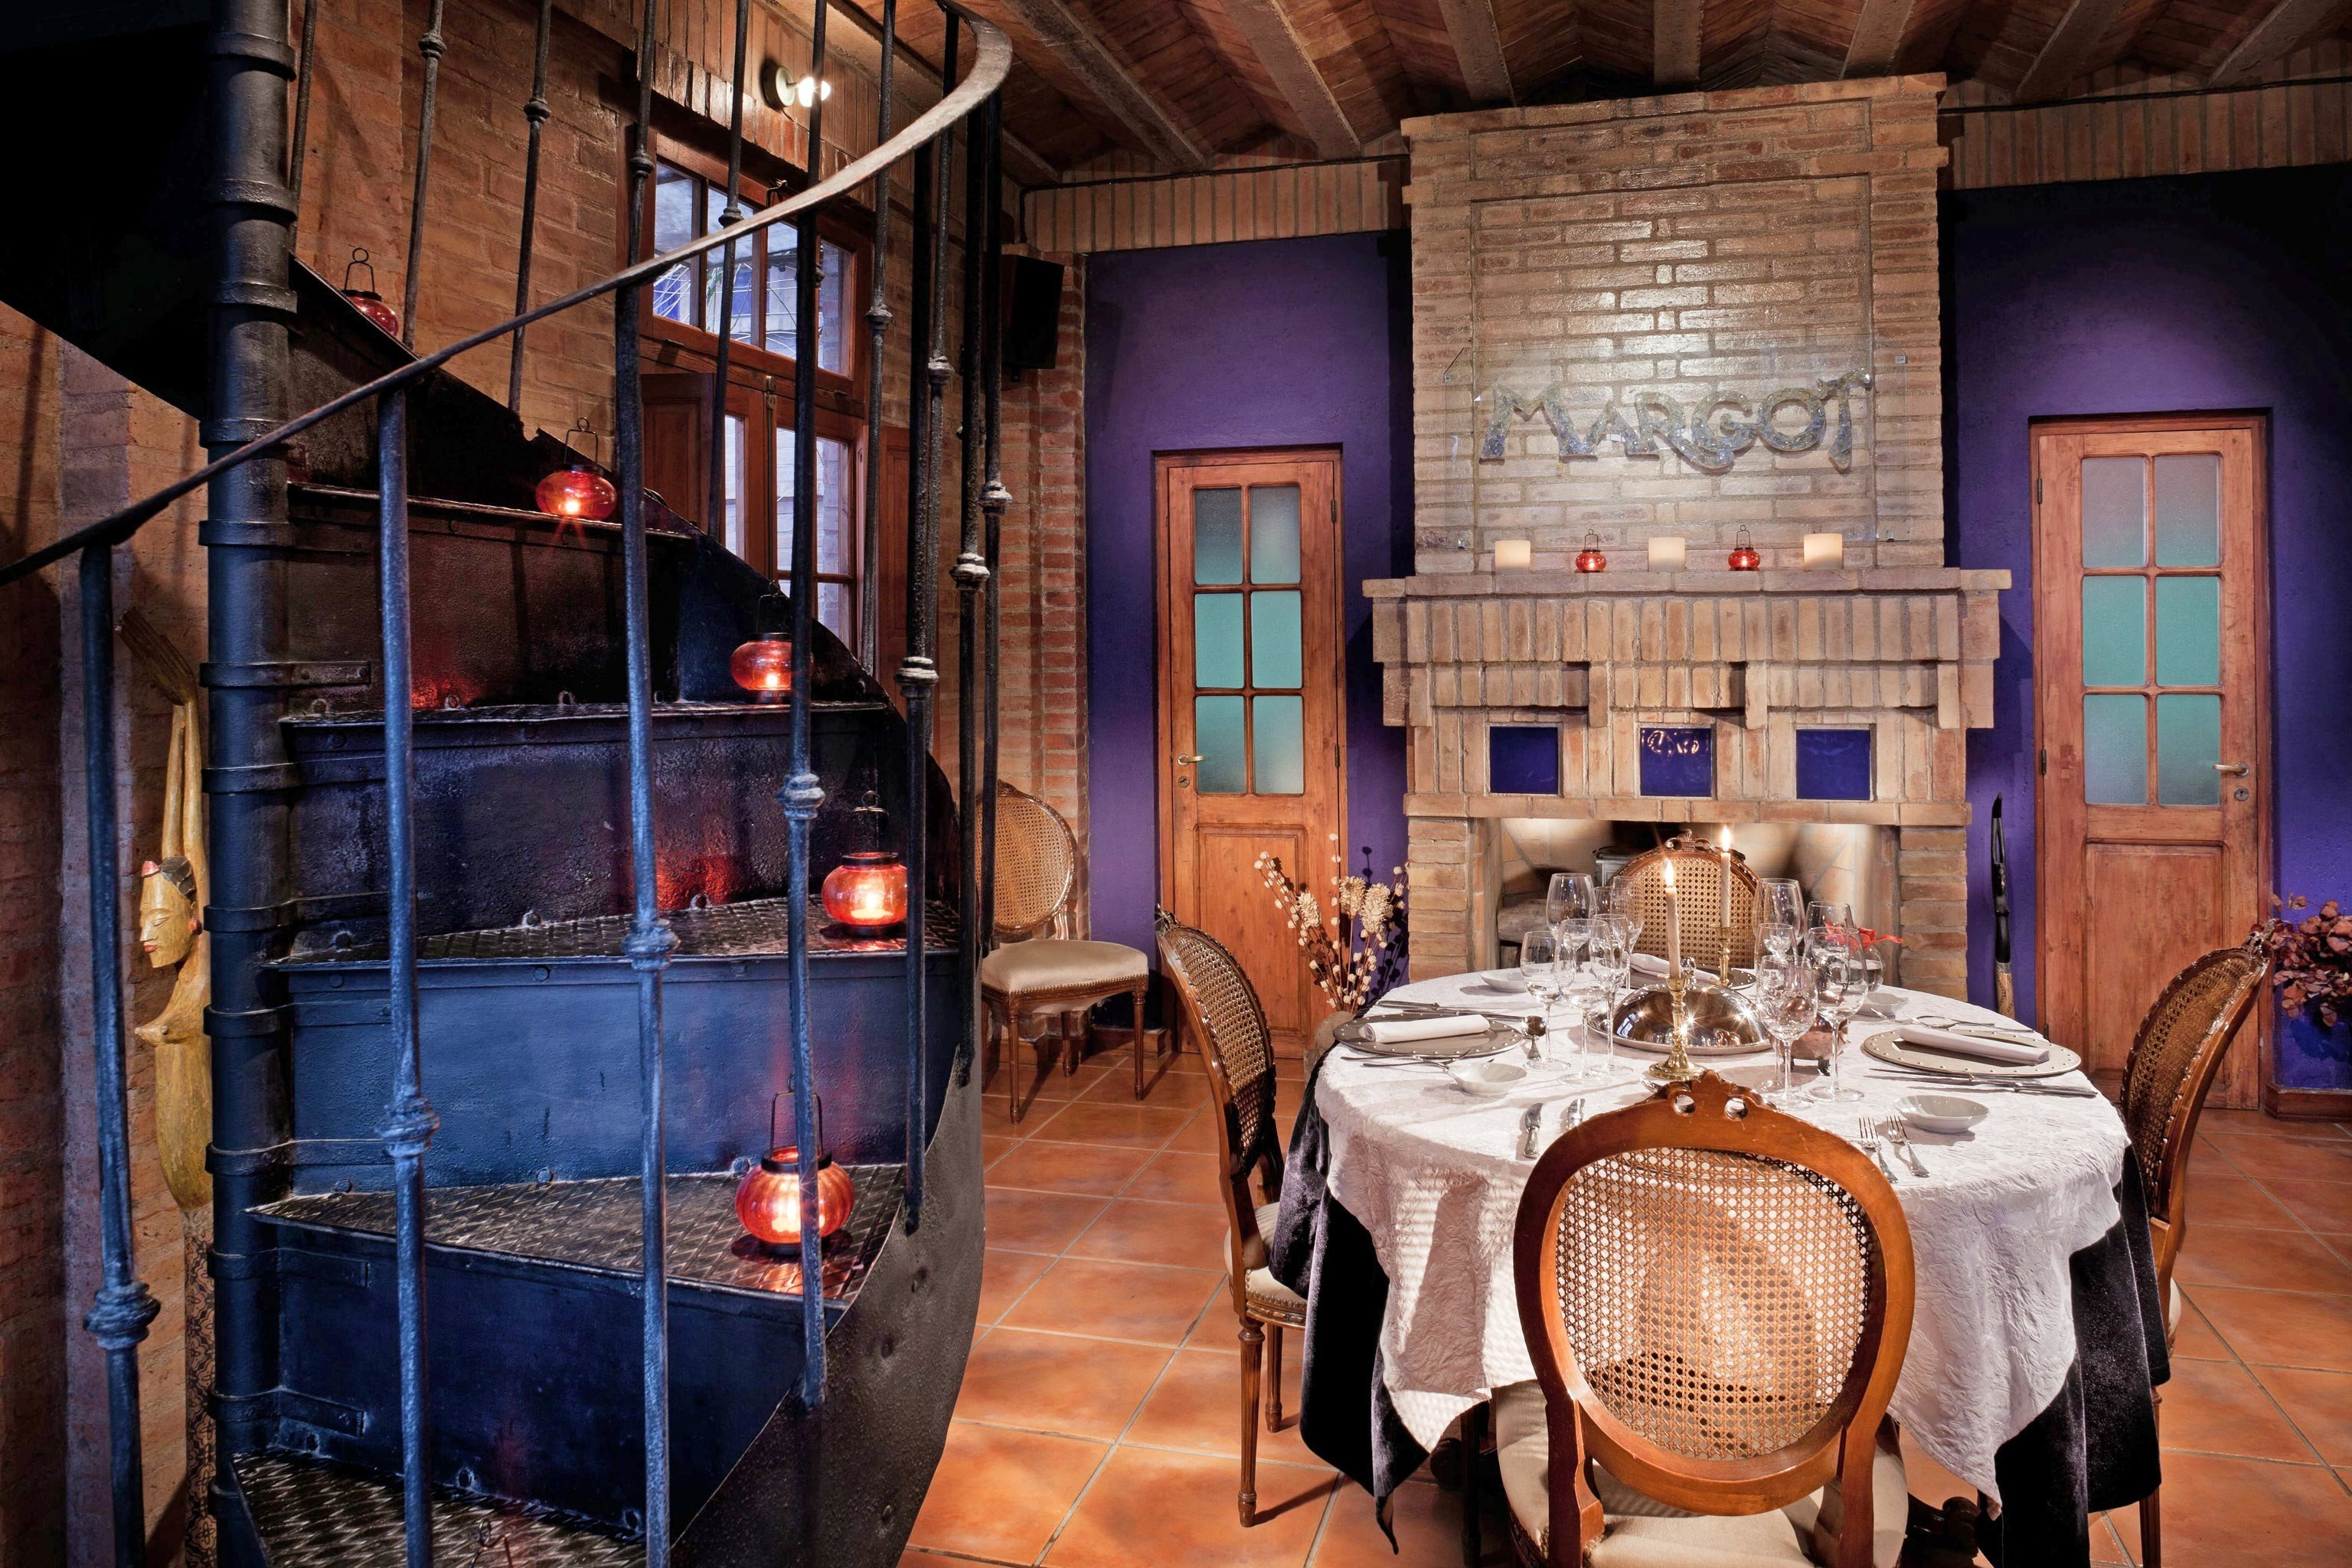 Boutique Dining Drink Eat Luxury chair home restaurant mansion basement